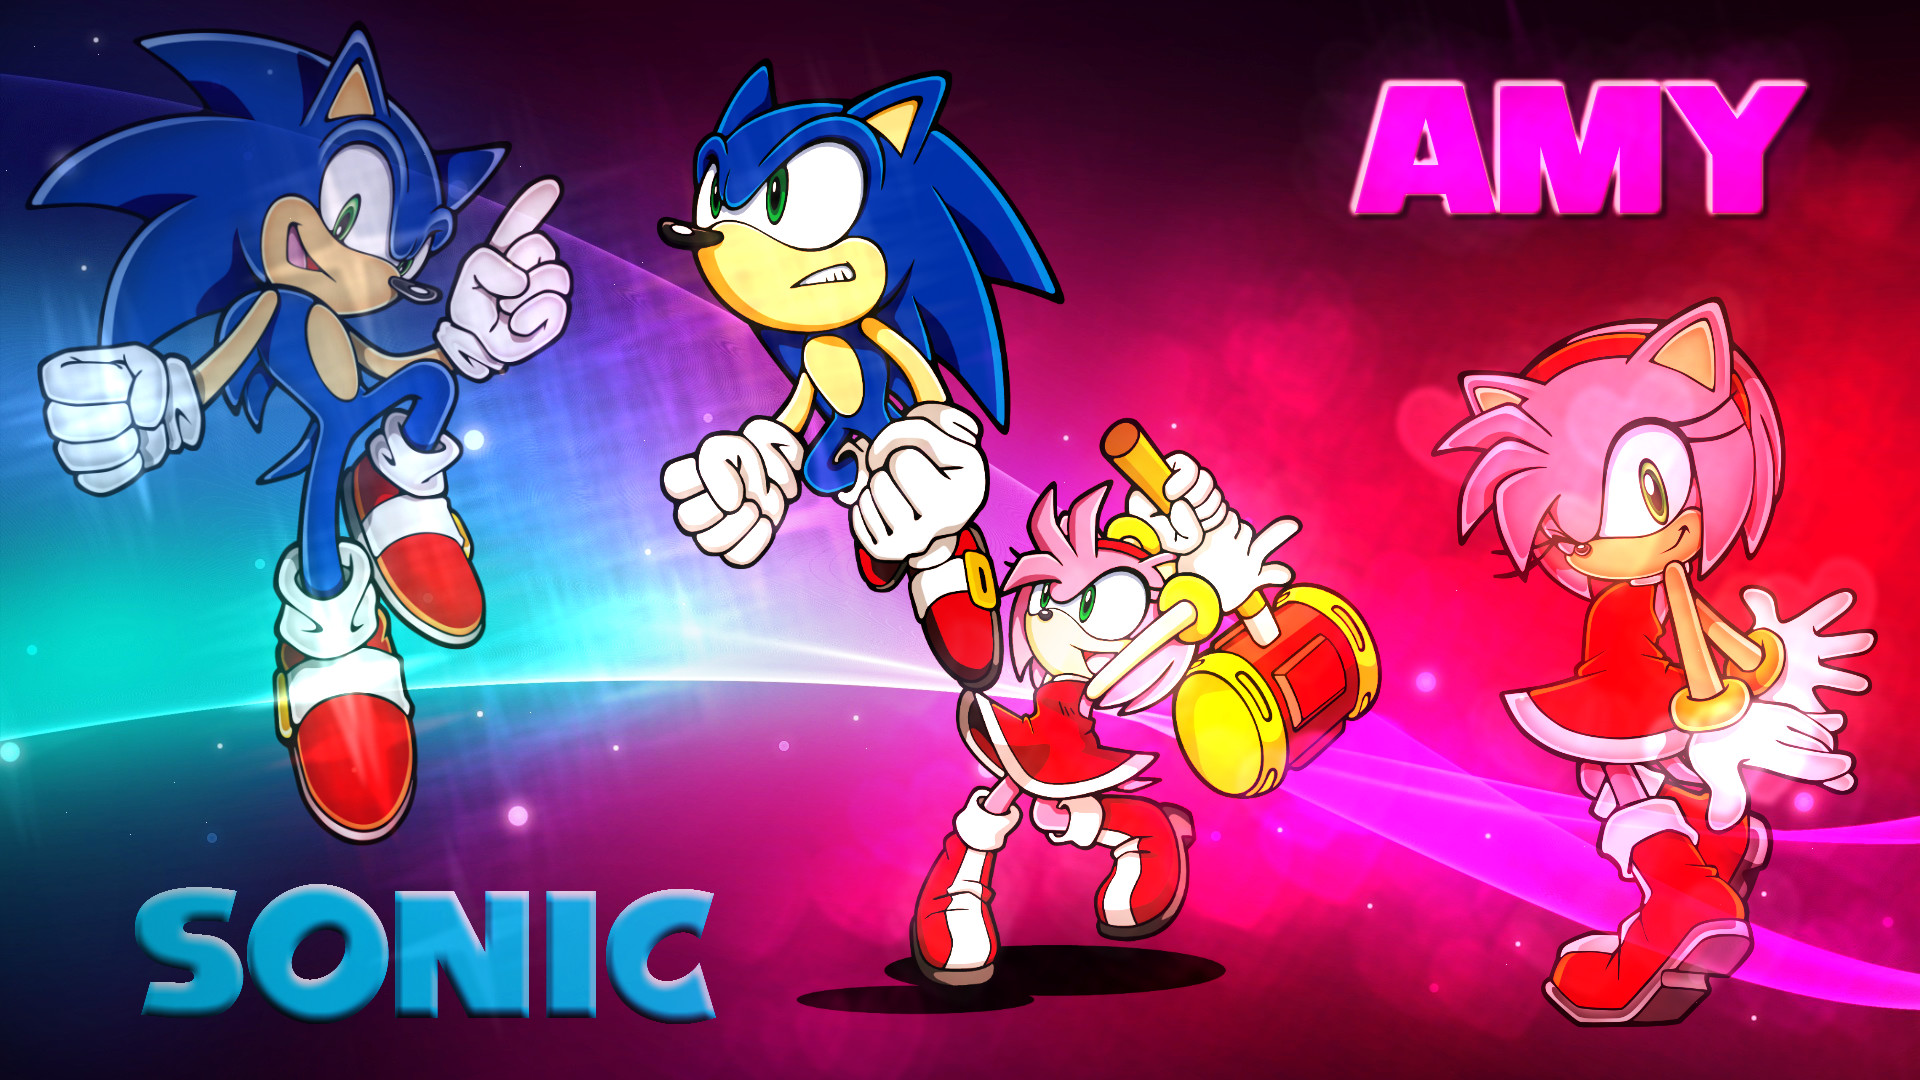 1920x1080 ... Wallpaper - Sonic and Amy (#1) by Haalyle